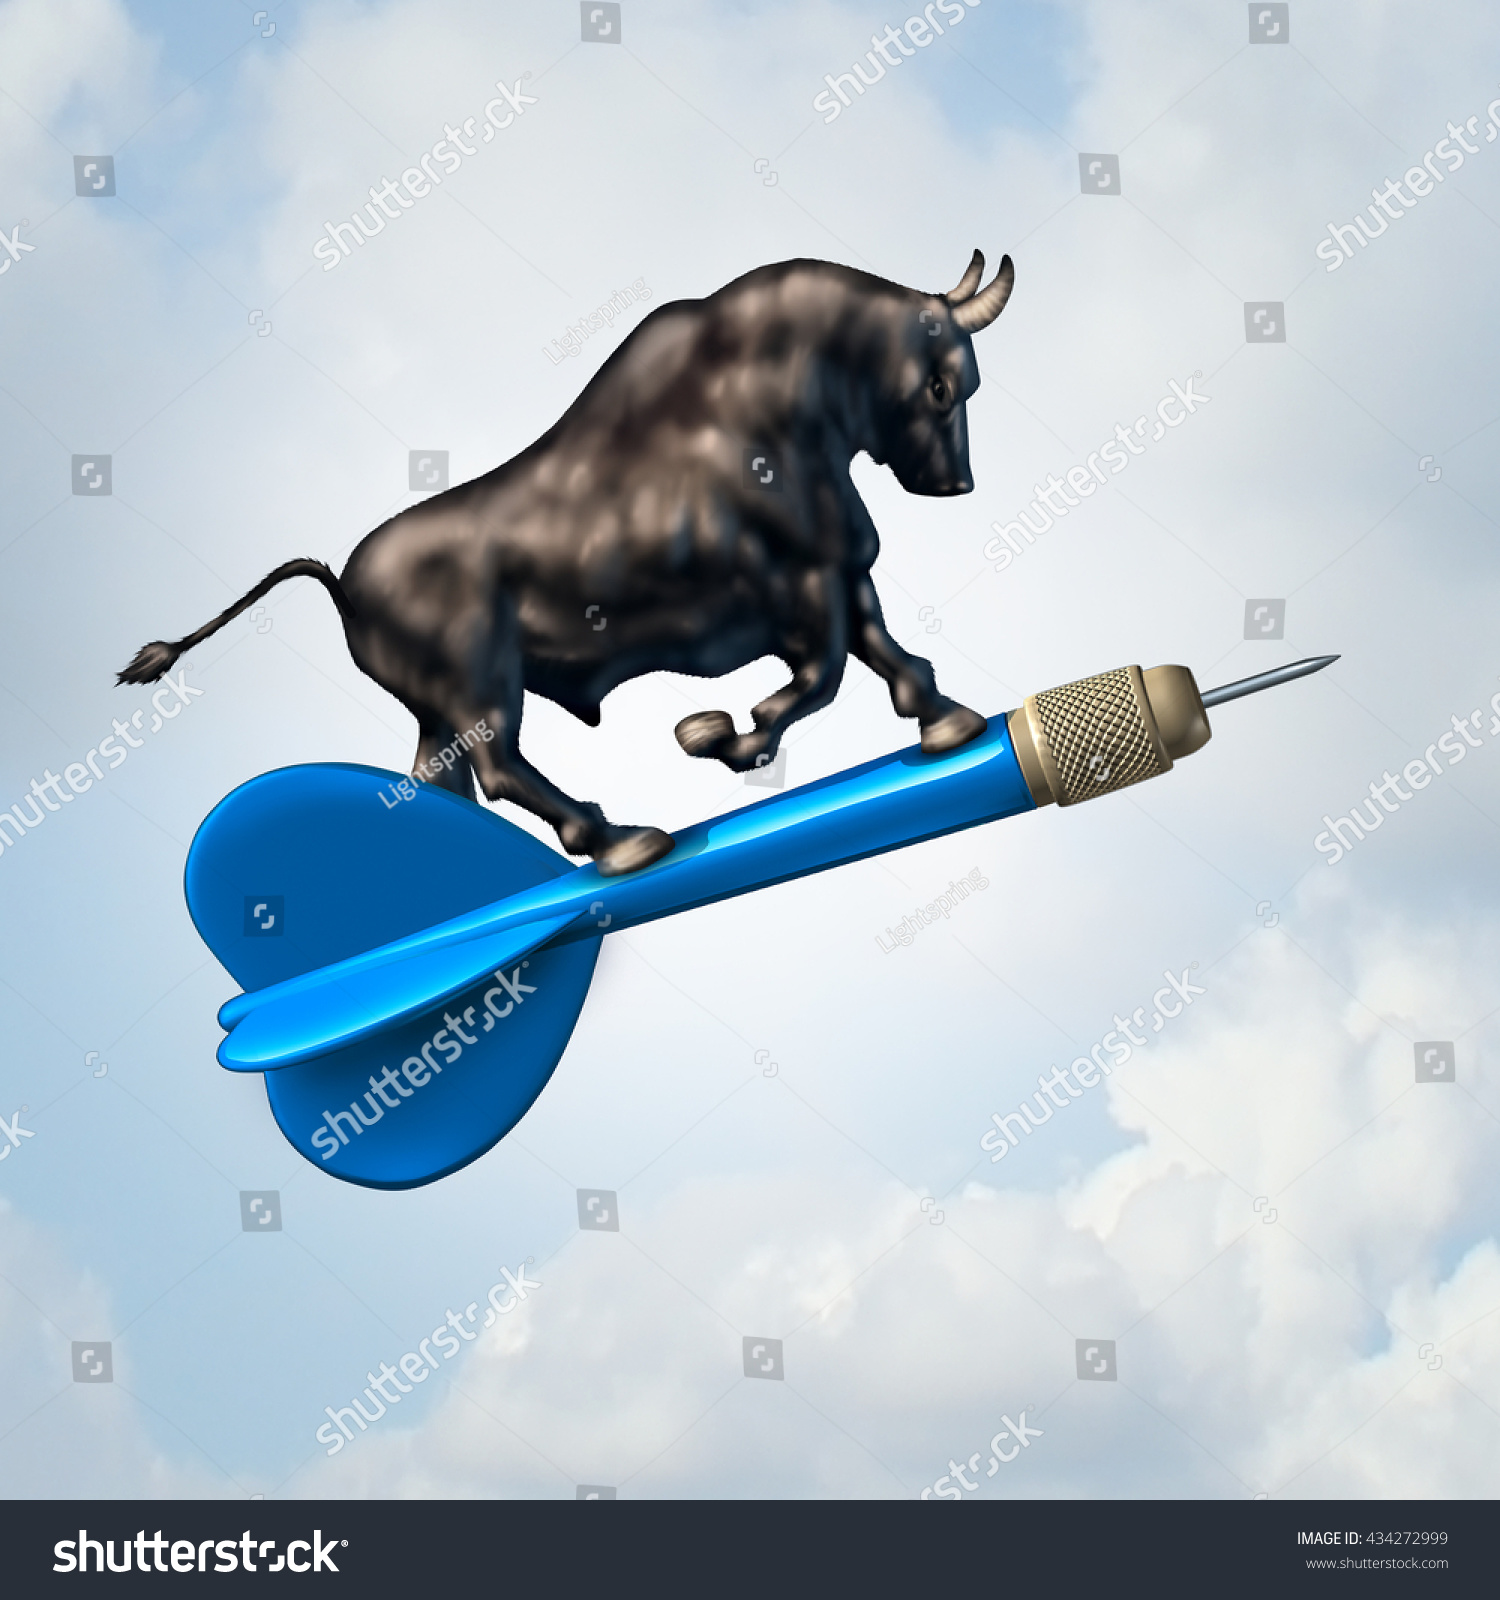 Bull market target financial concept profiable stock illustration bull market target financial concept and profiable stock goal business symbol as an optimistic bull riding buycottarizona